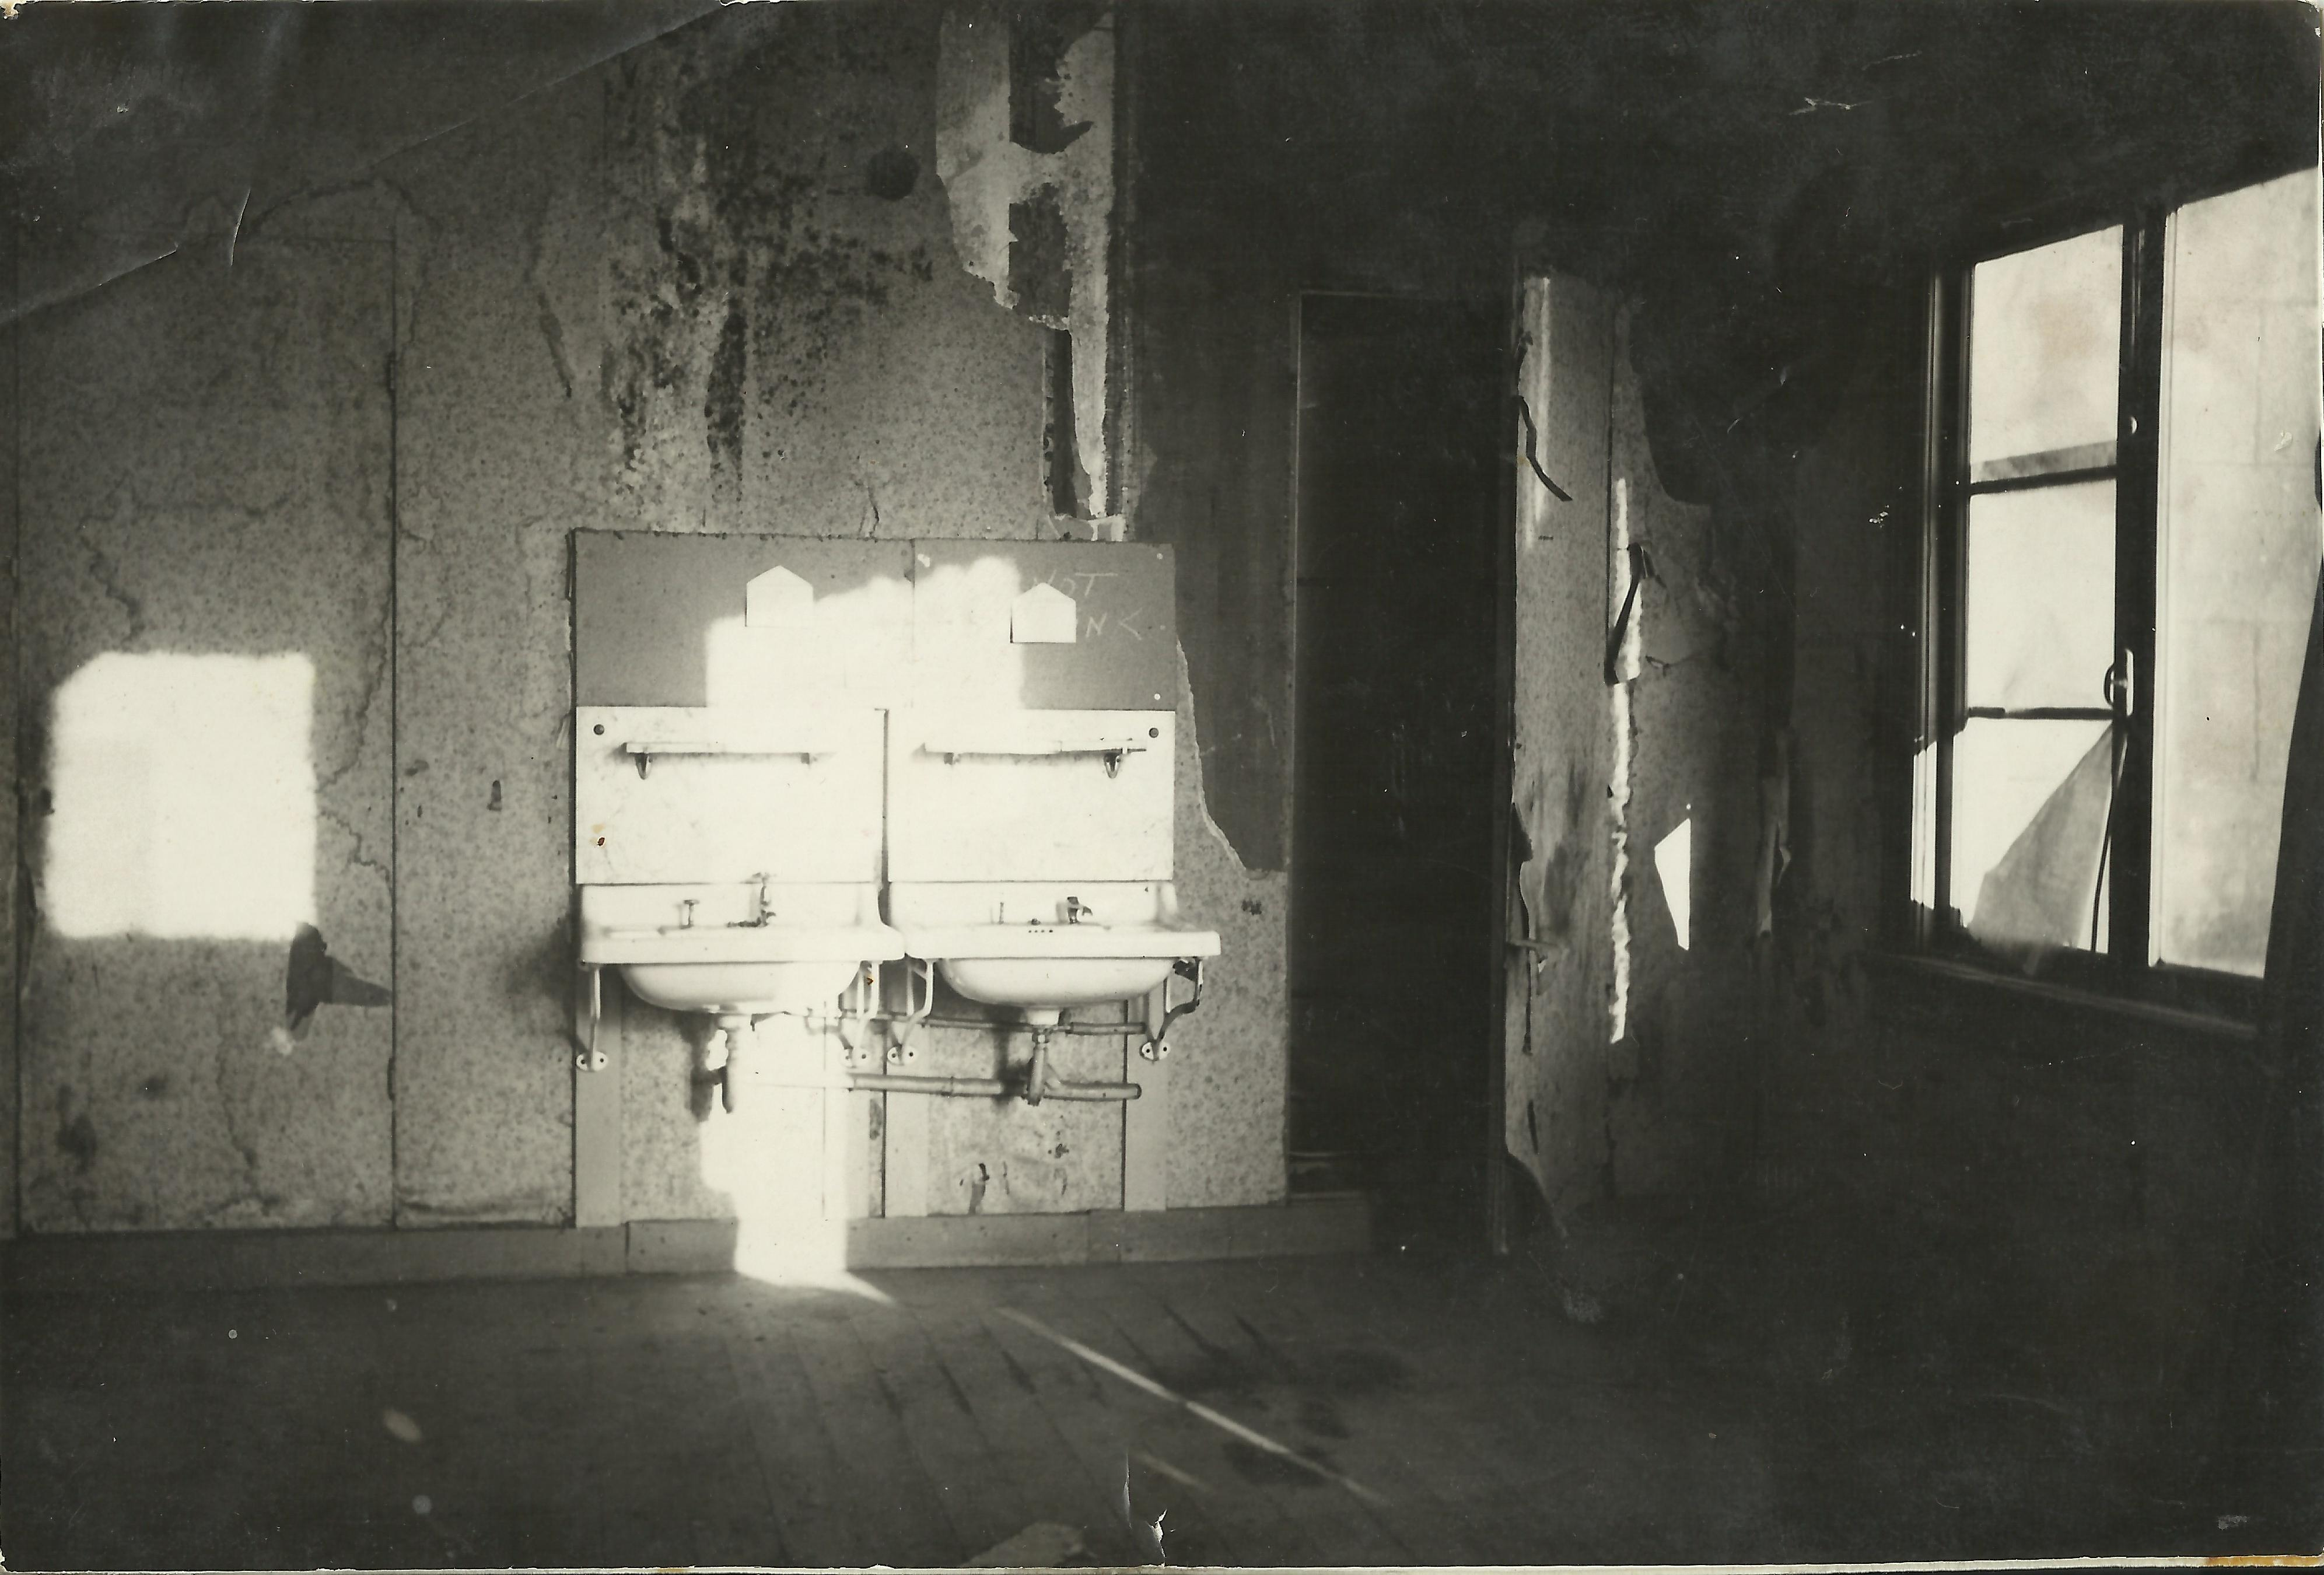 Damage in Hotel Erica after the liberation